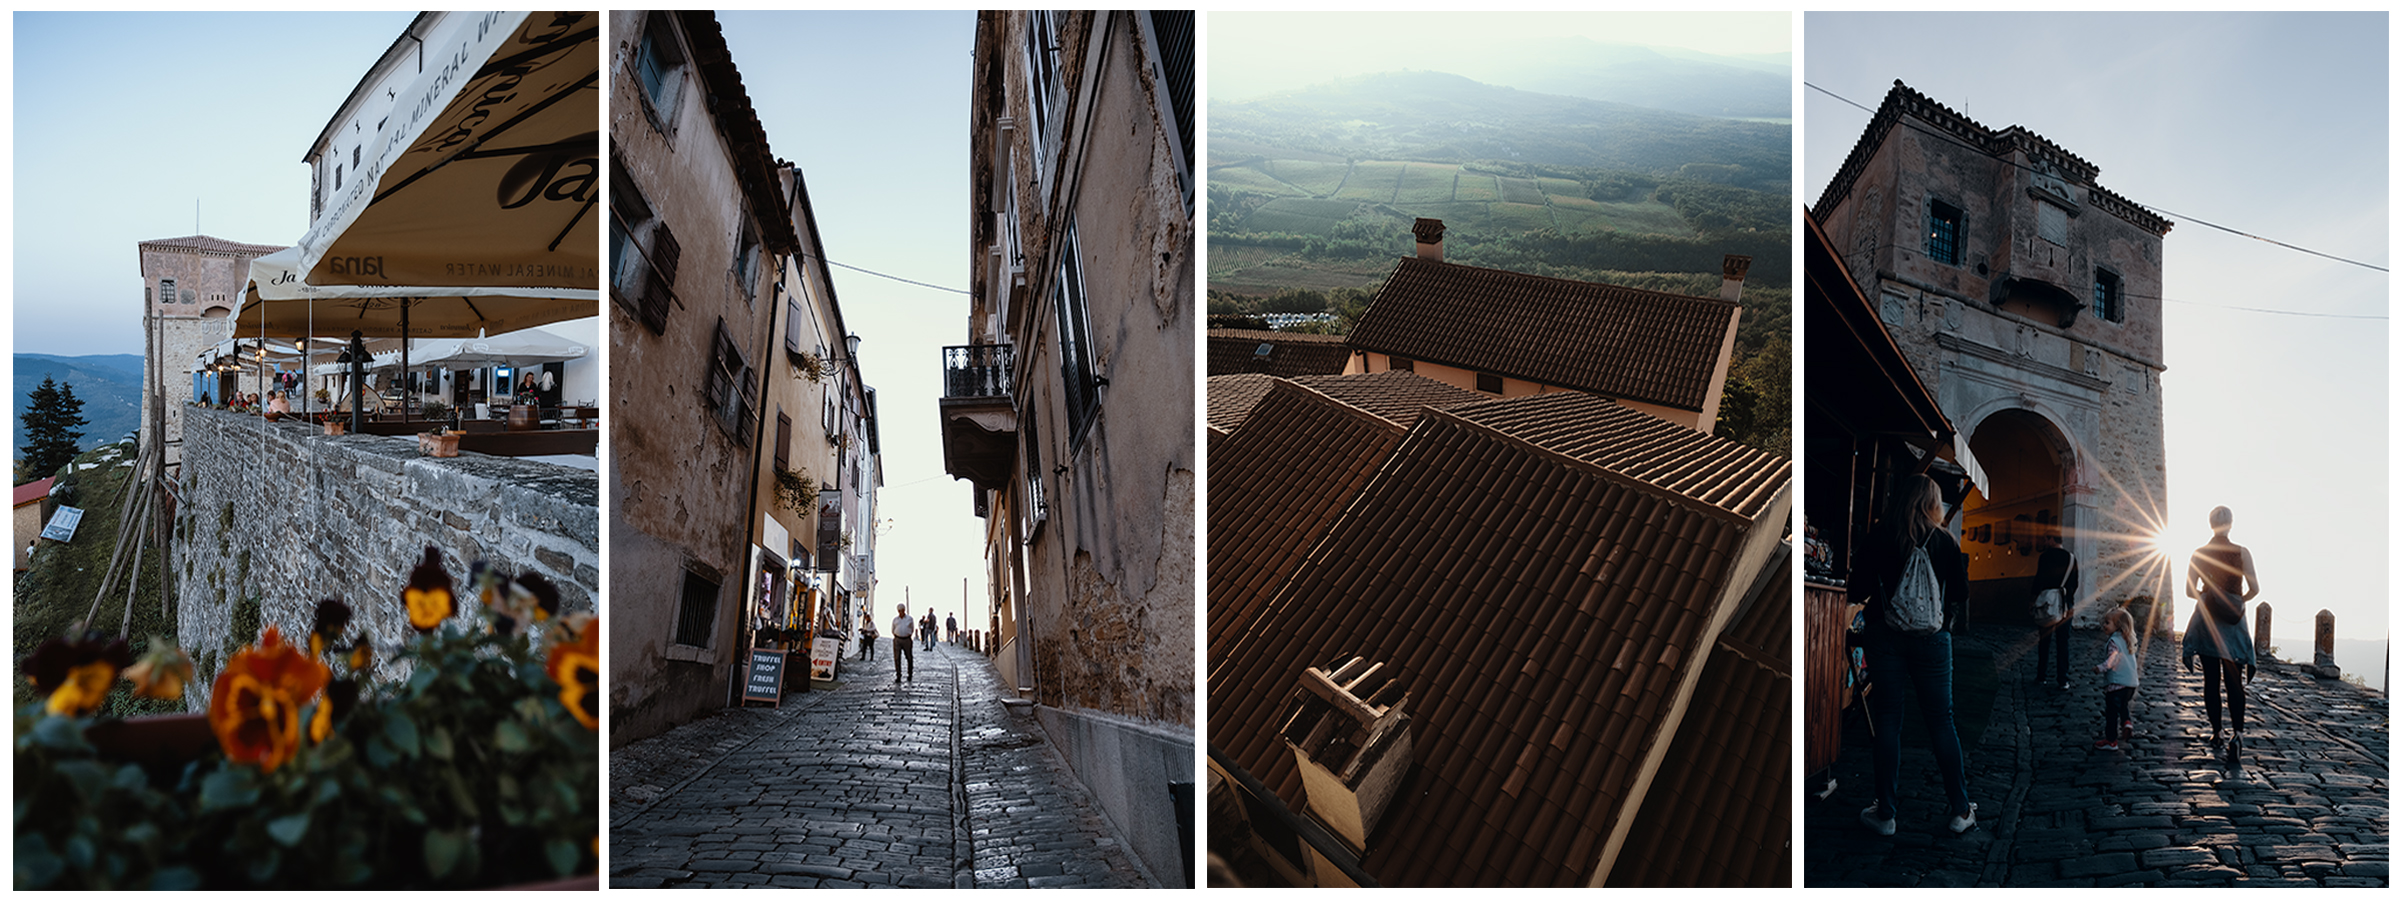 Old-Town_Collage.jpg